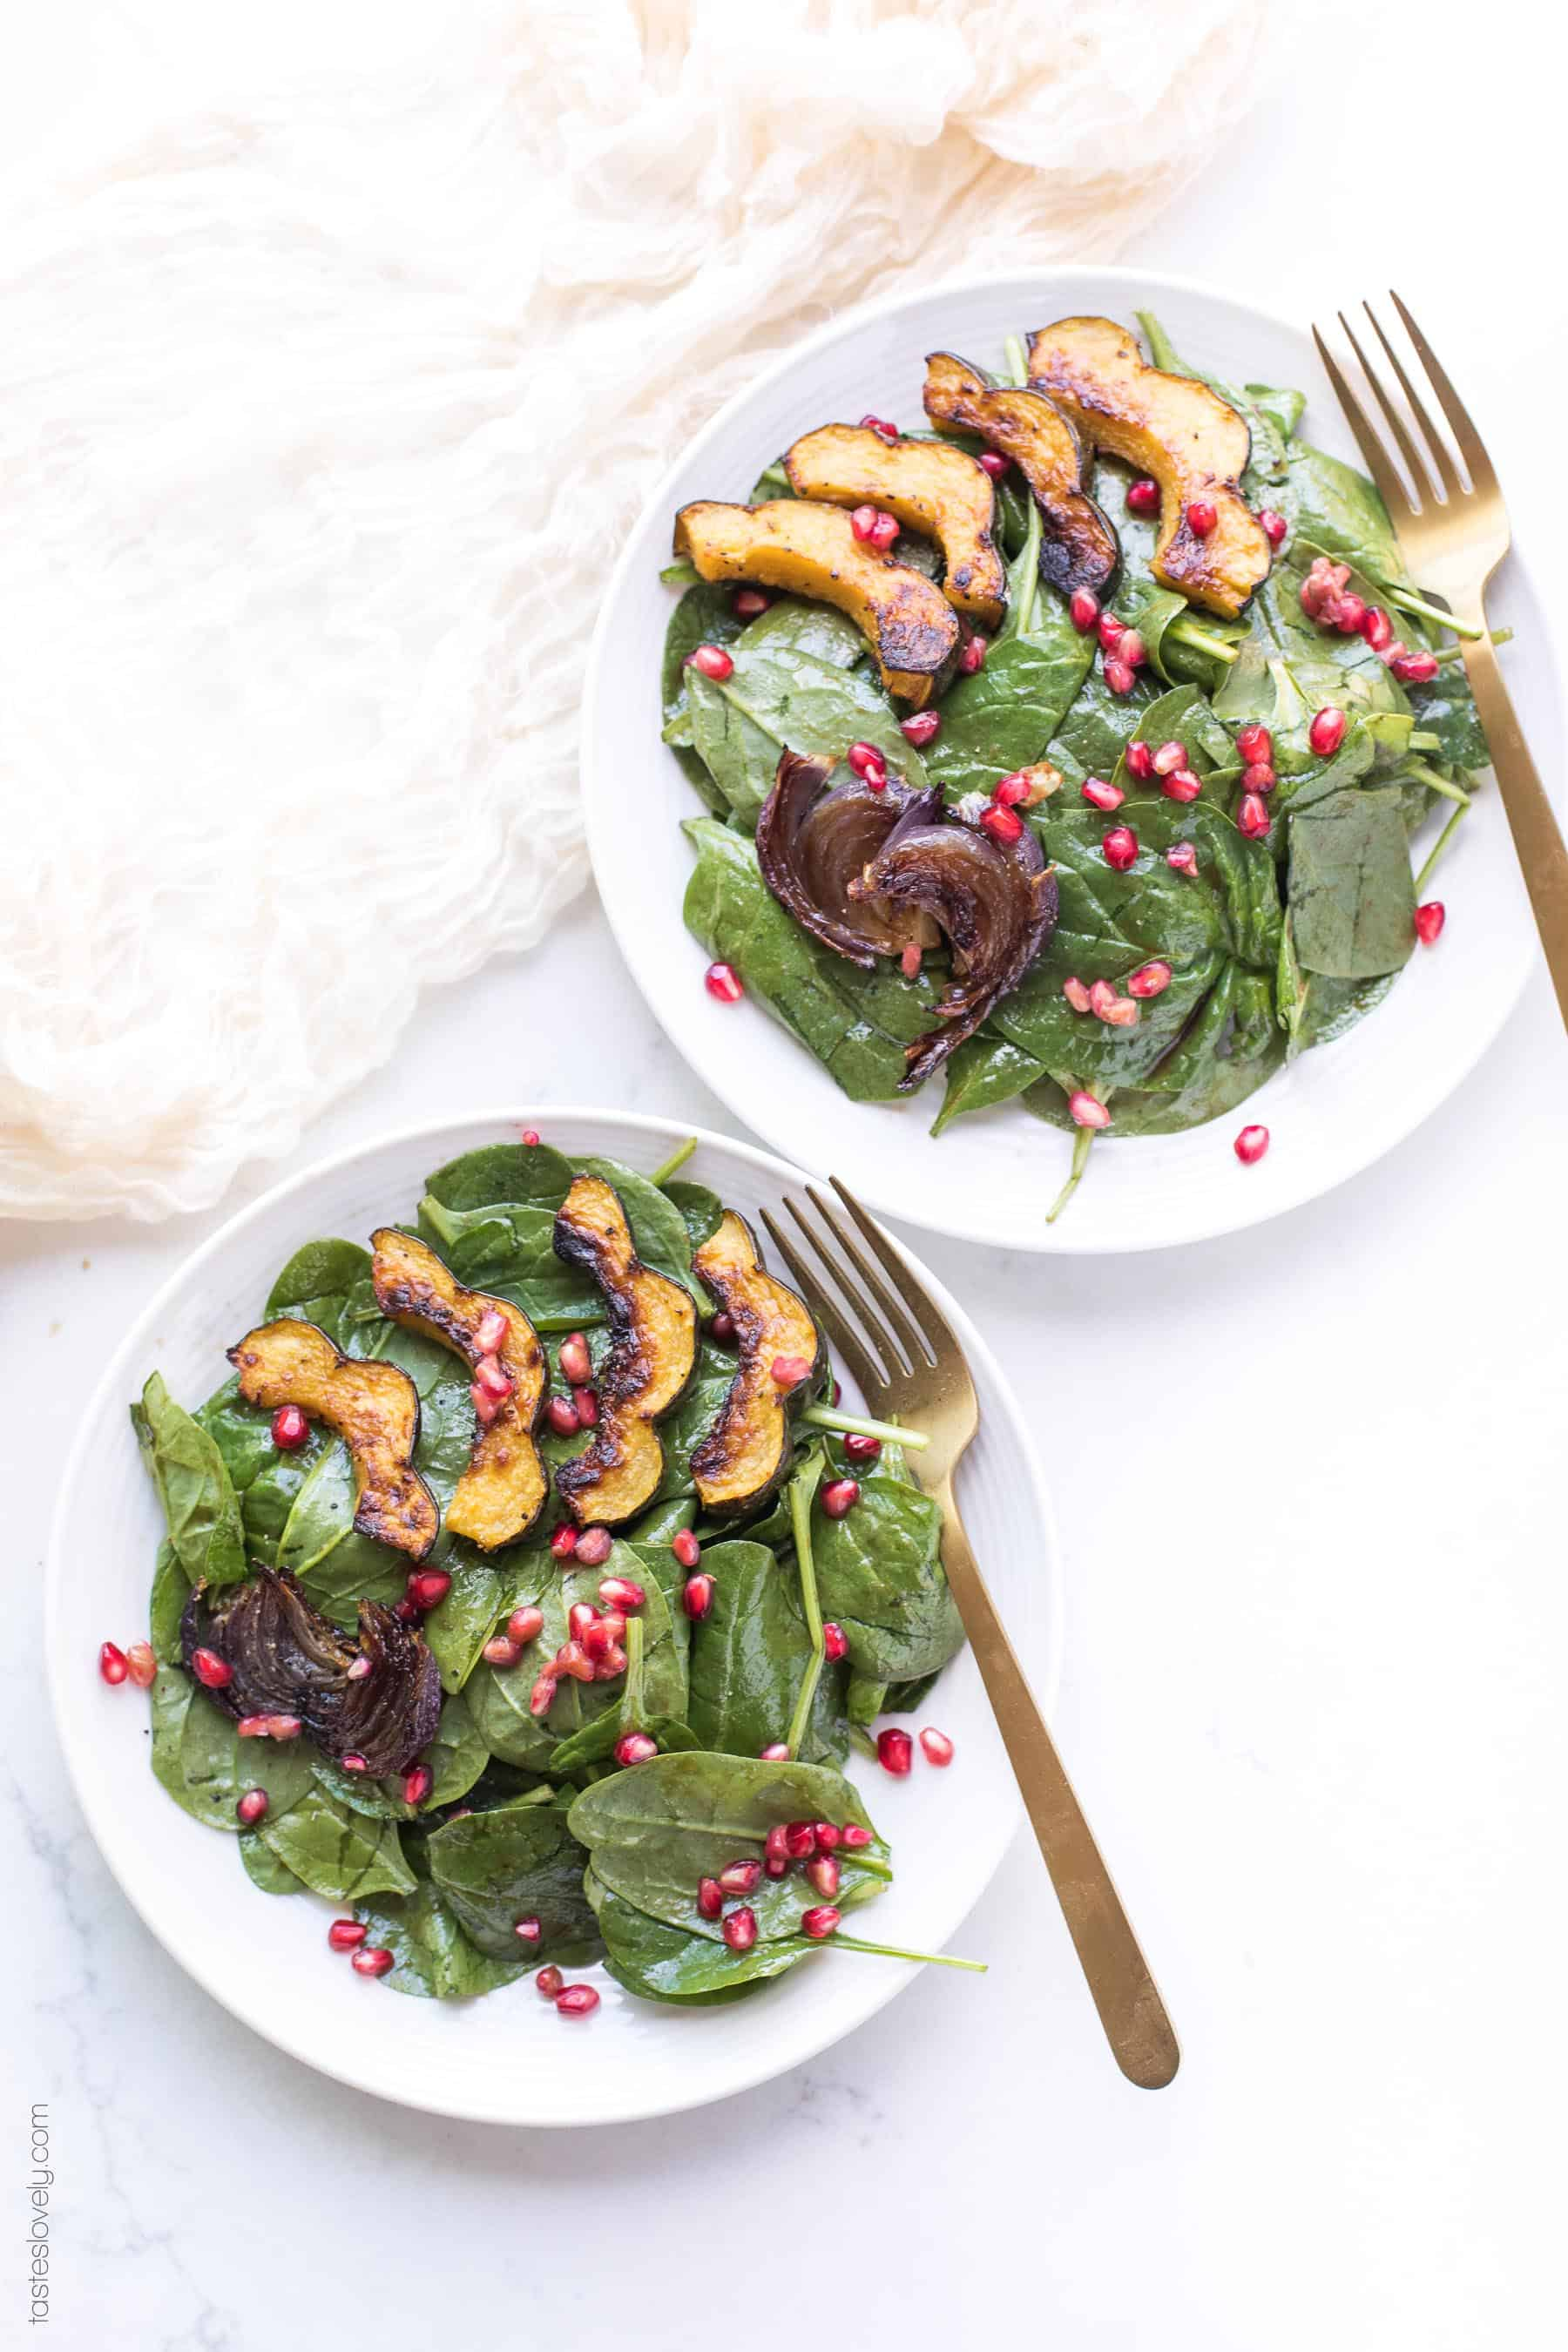 Spinach salad with roasted acorn squash, onions and pomegranates